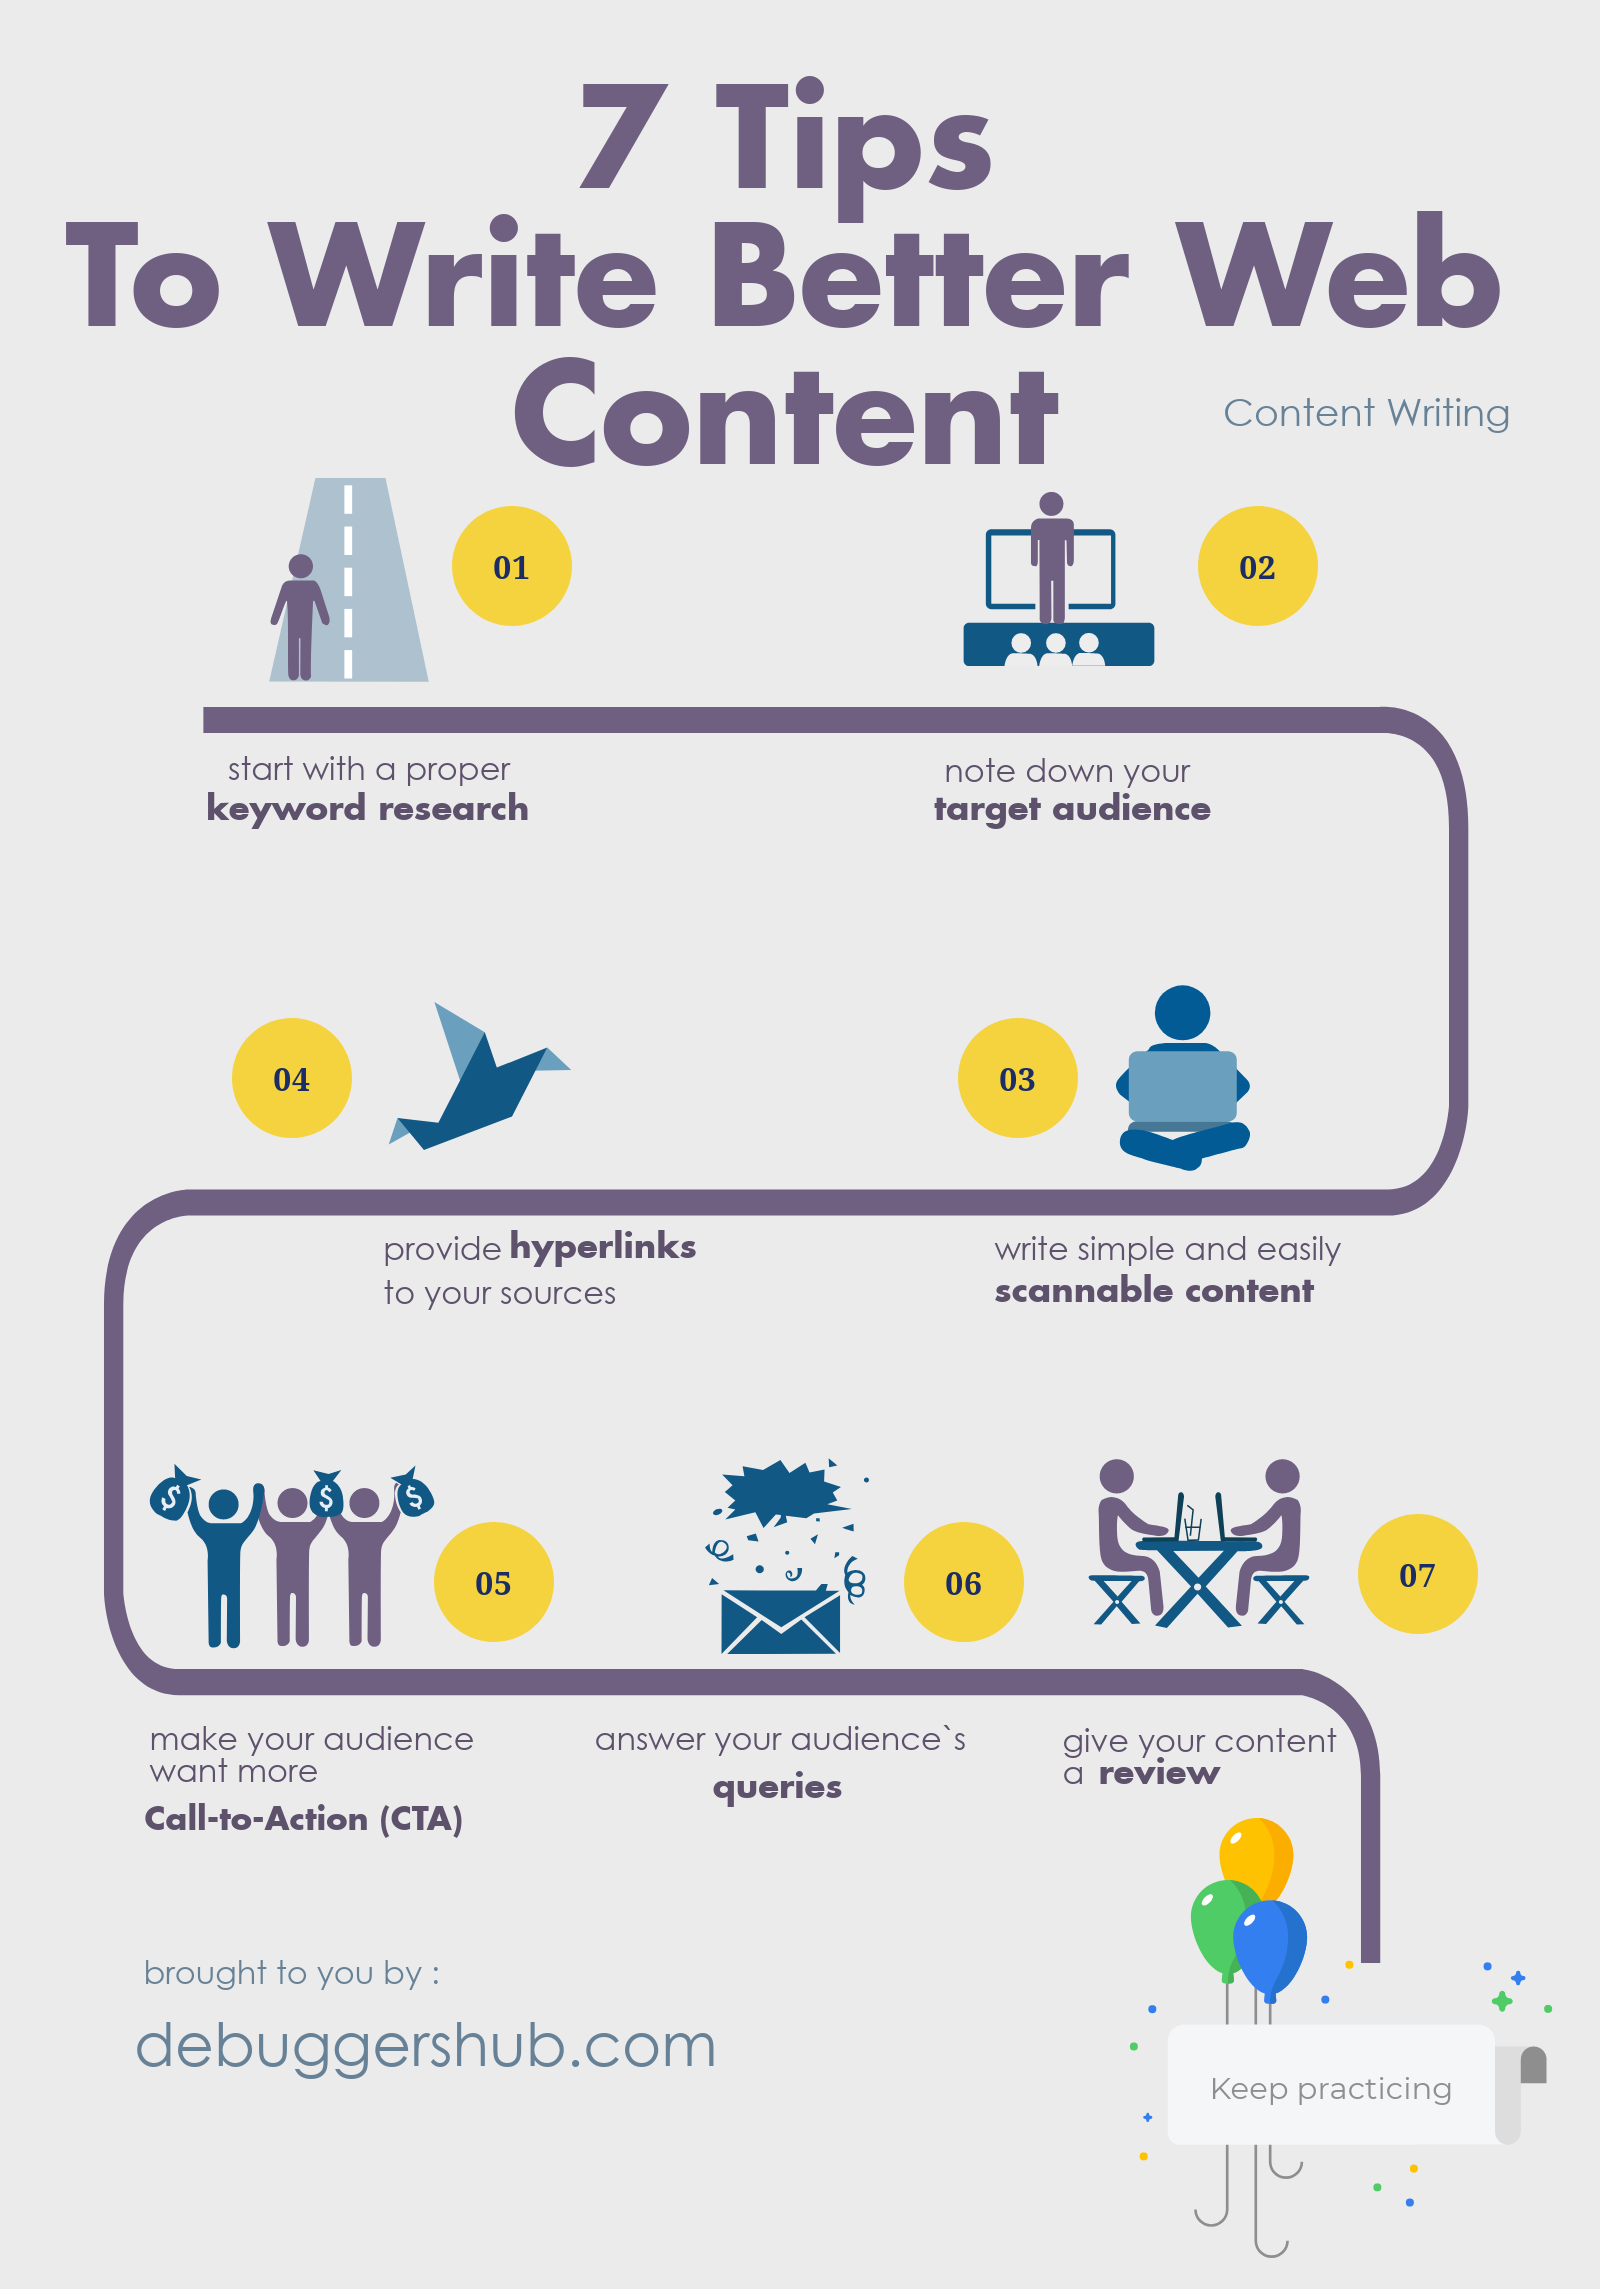 7-tips-to-write-better-web-content